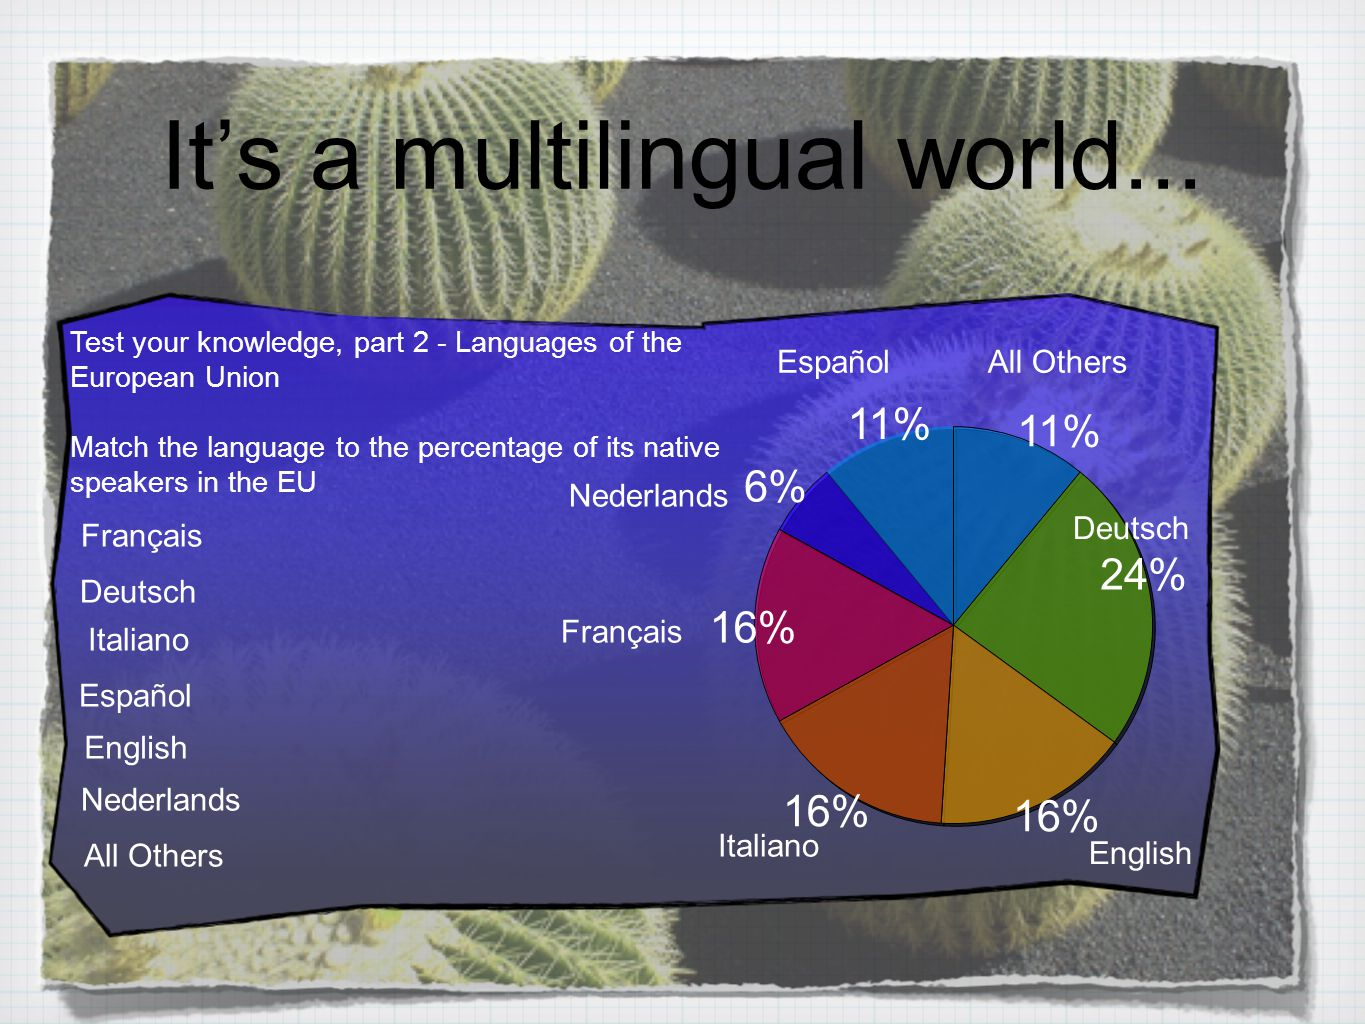 It's a multilingual world...